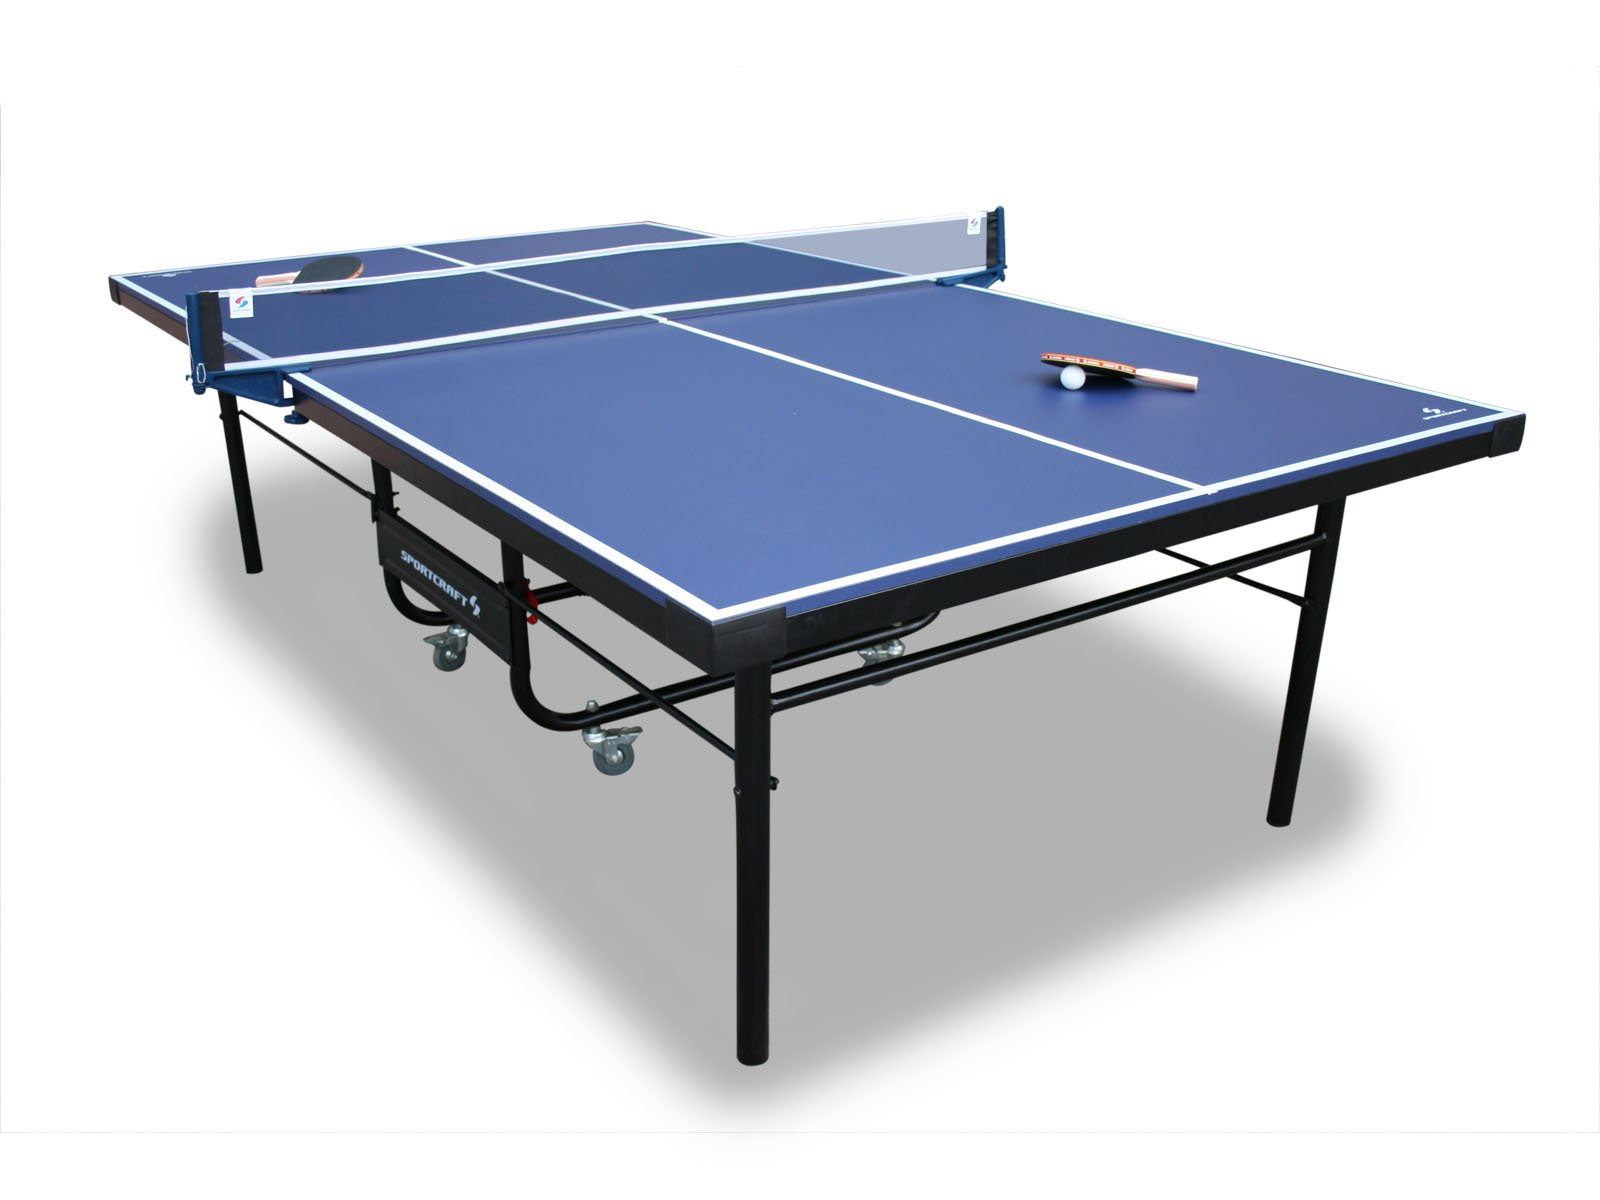 Sportcraft PX400 4 Piece Table Tennis Table